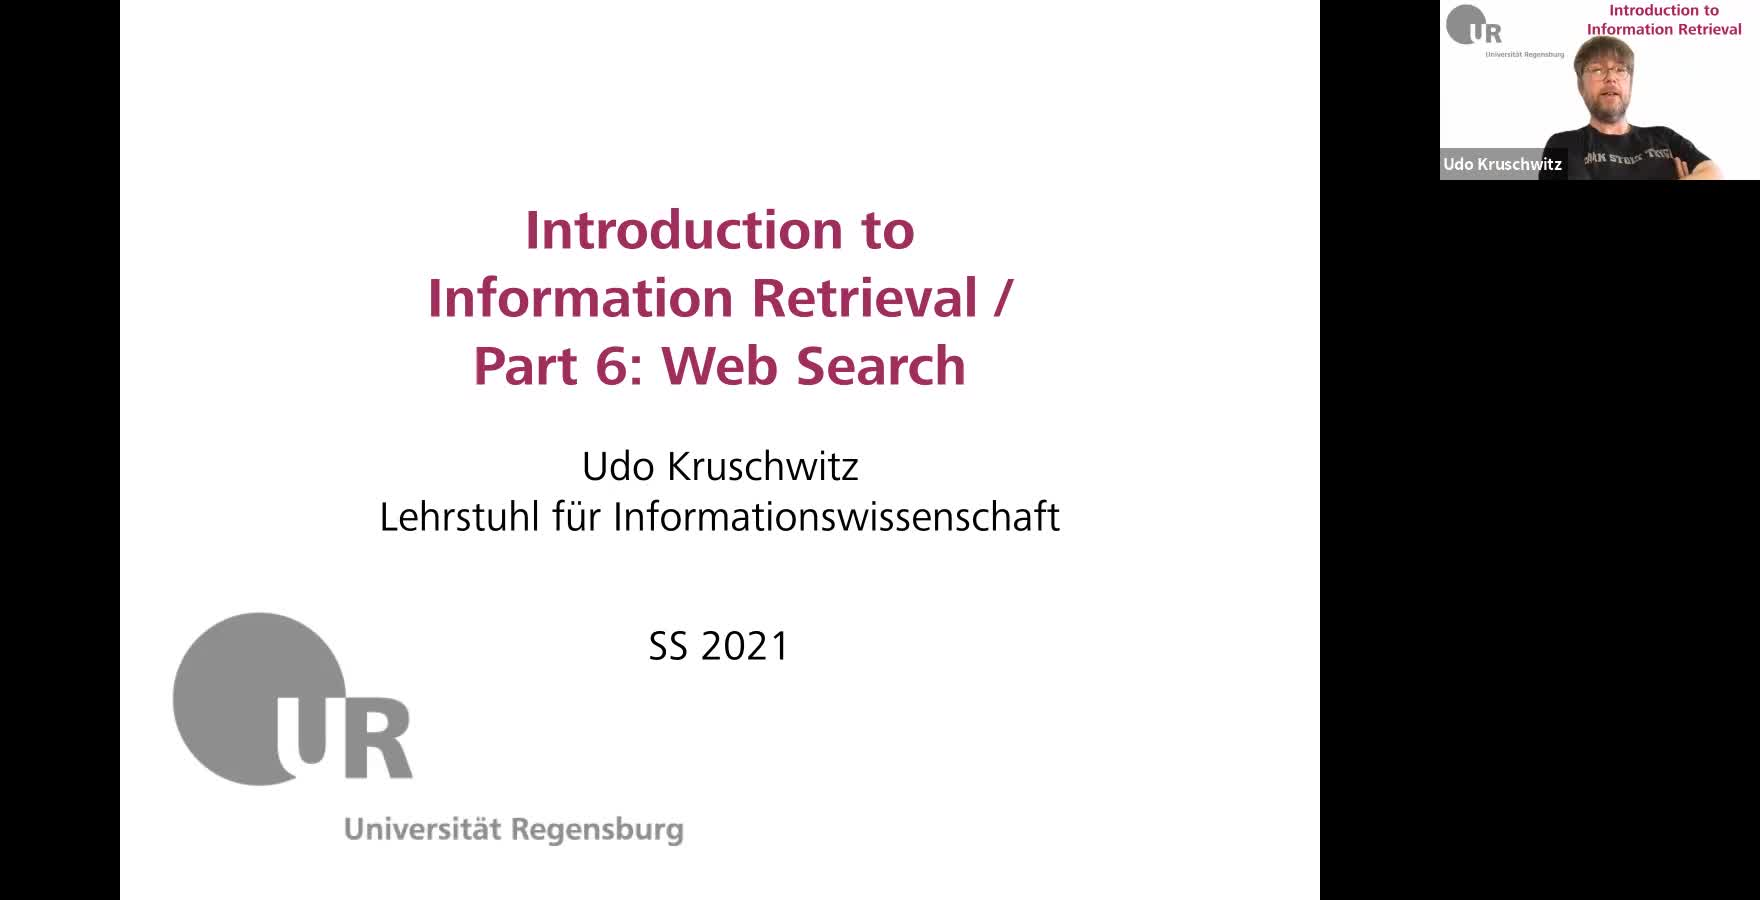 Introduction to Information Retrieval - Lecture 6 (Web search)